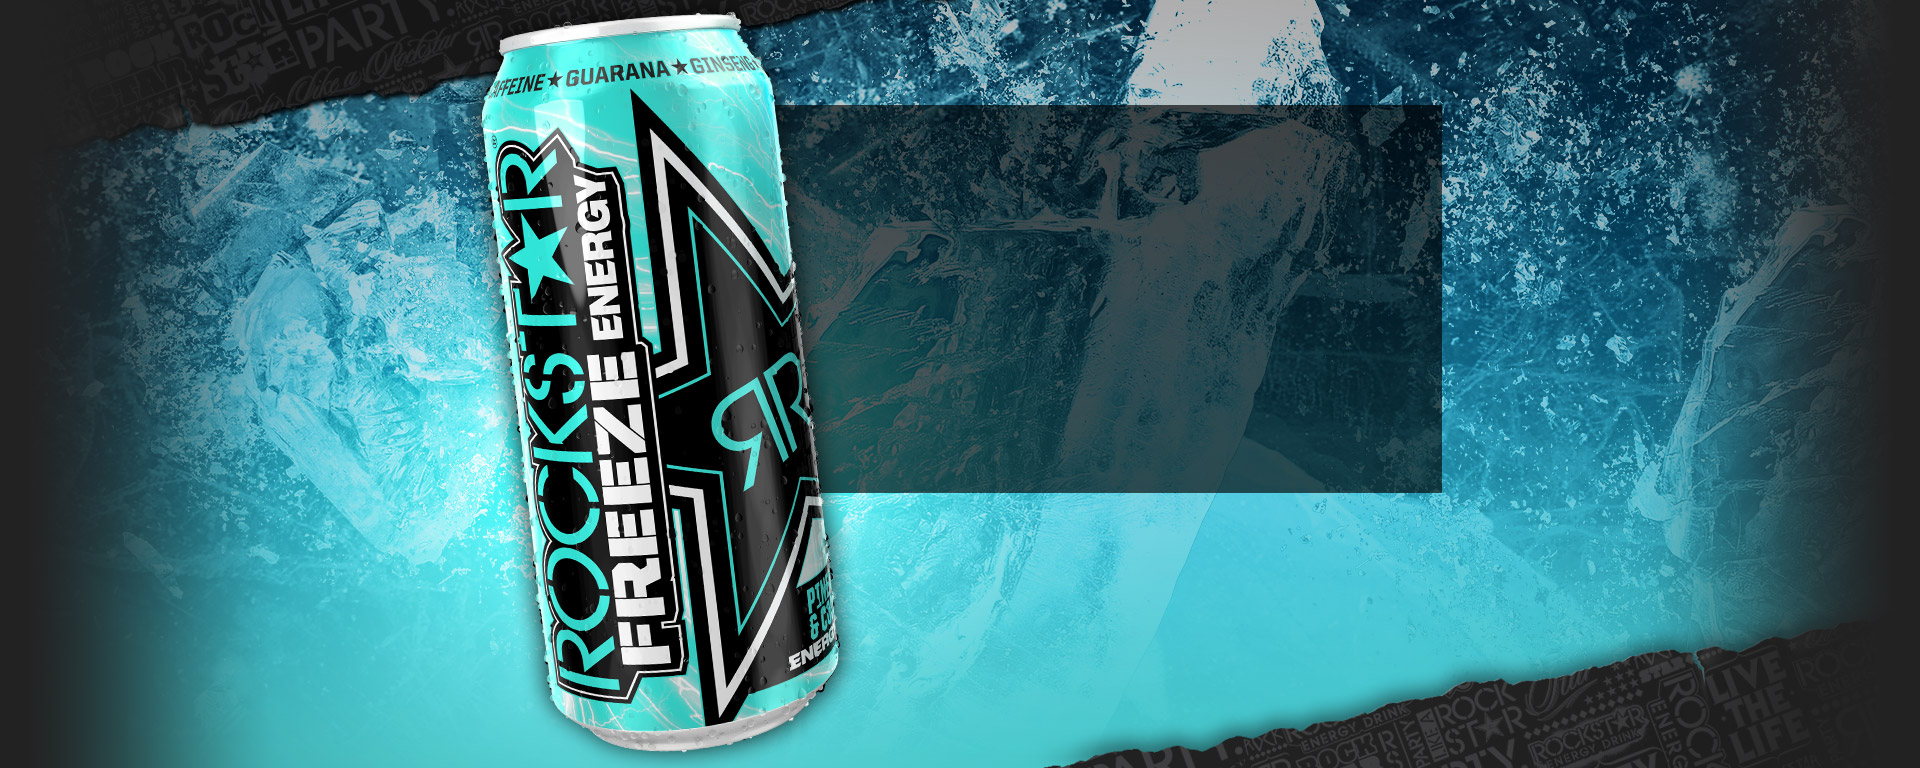 Can Energy Drinks Freeze